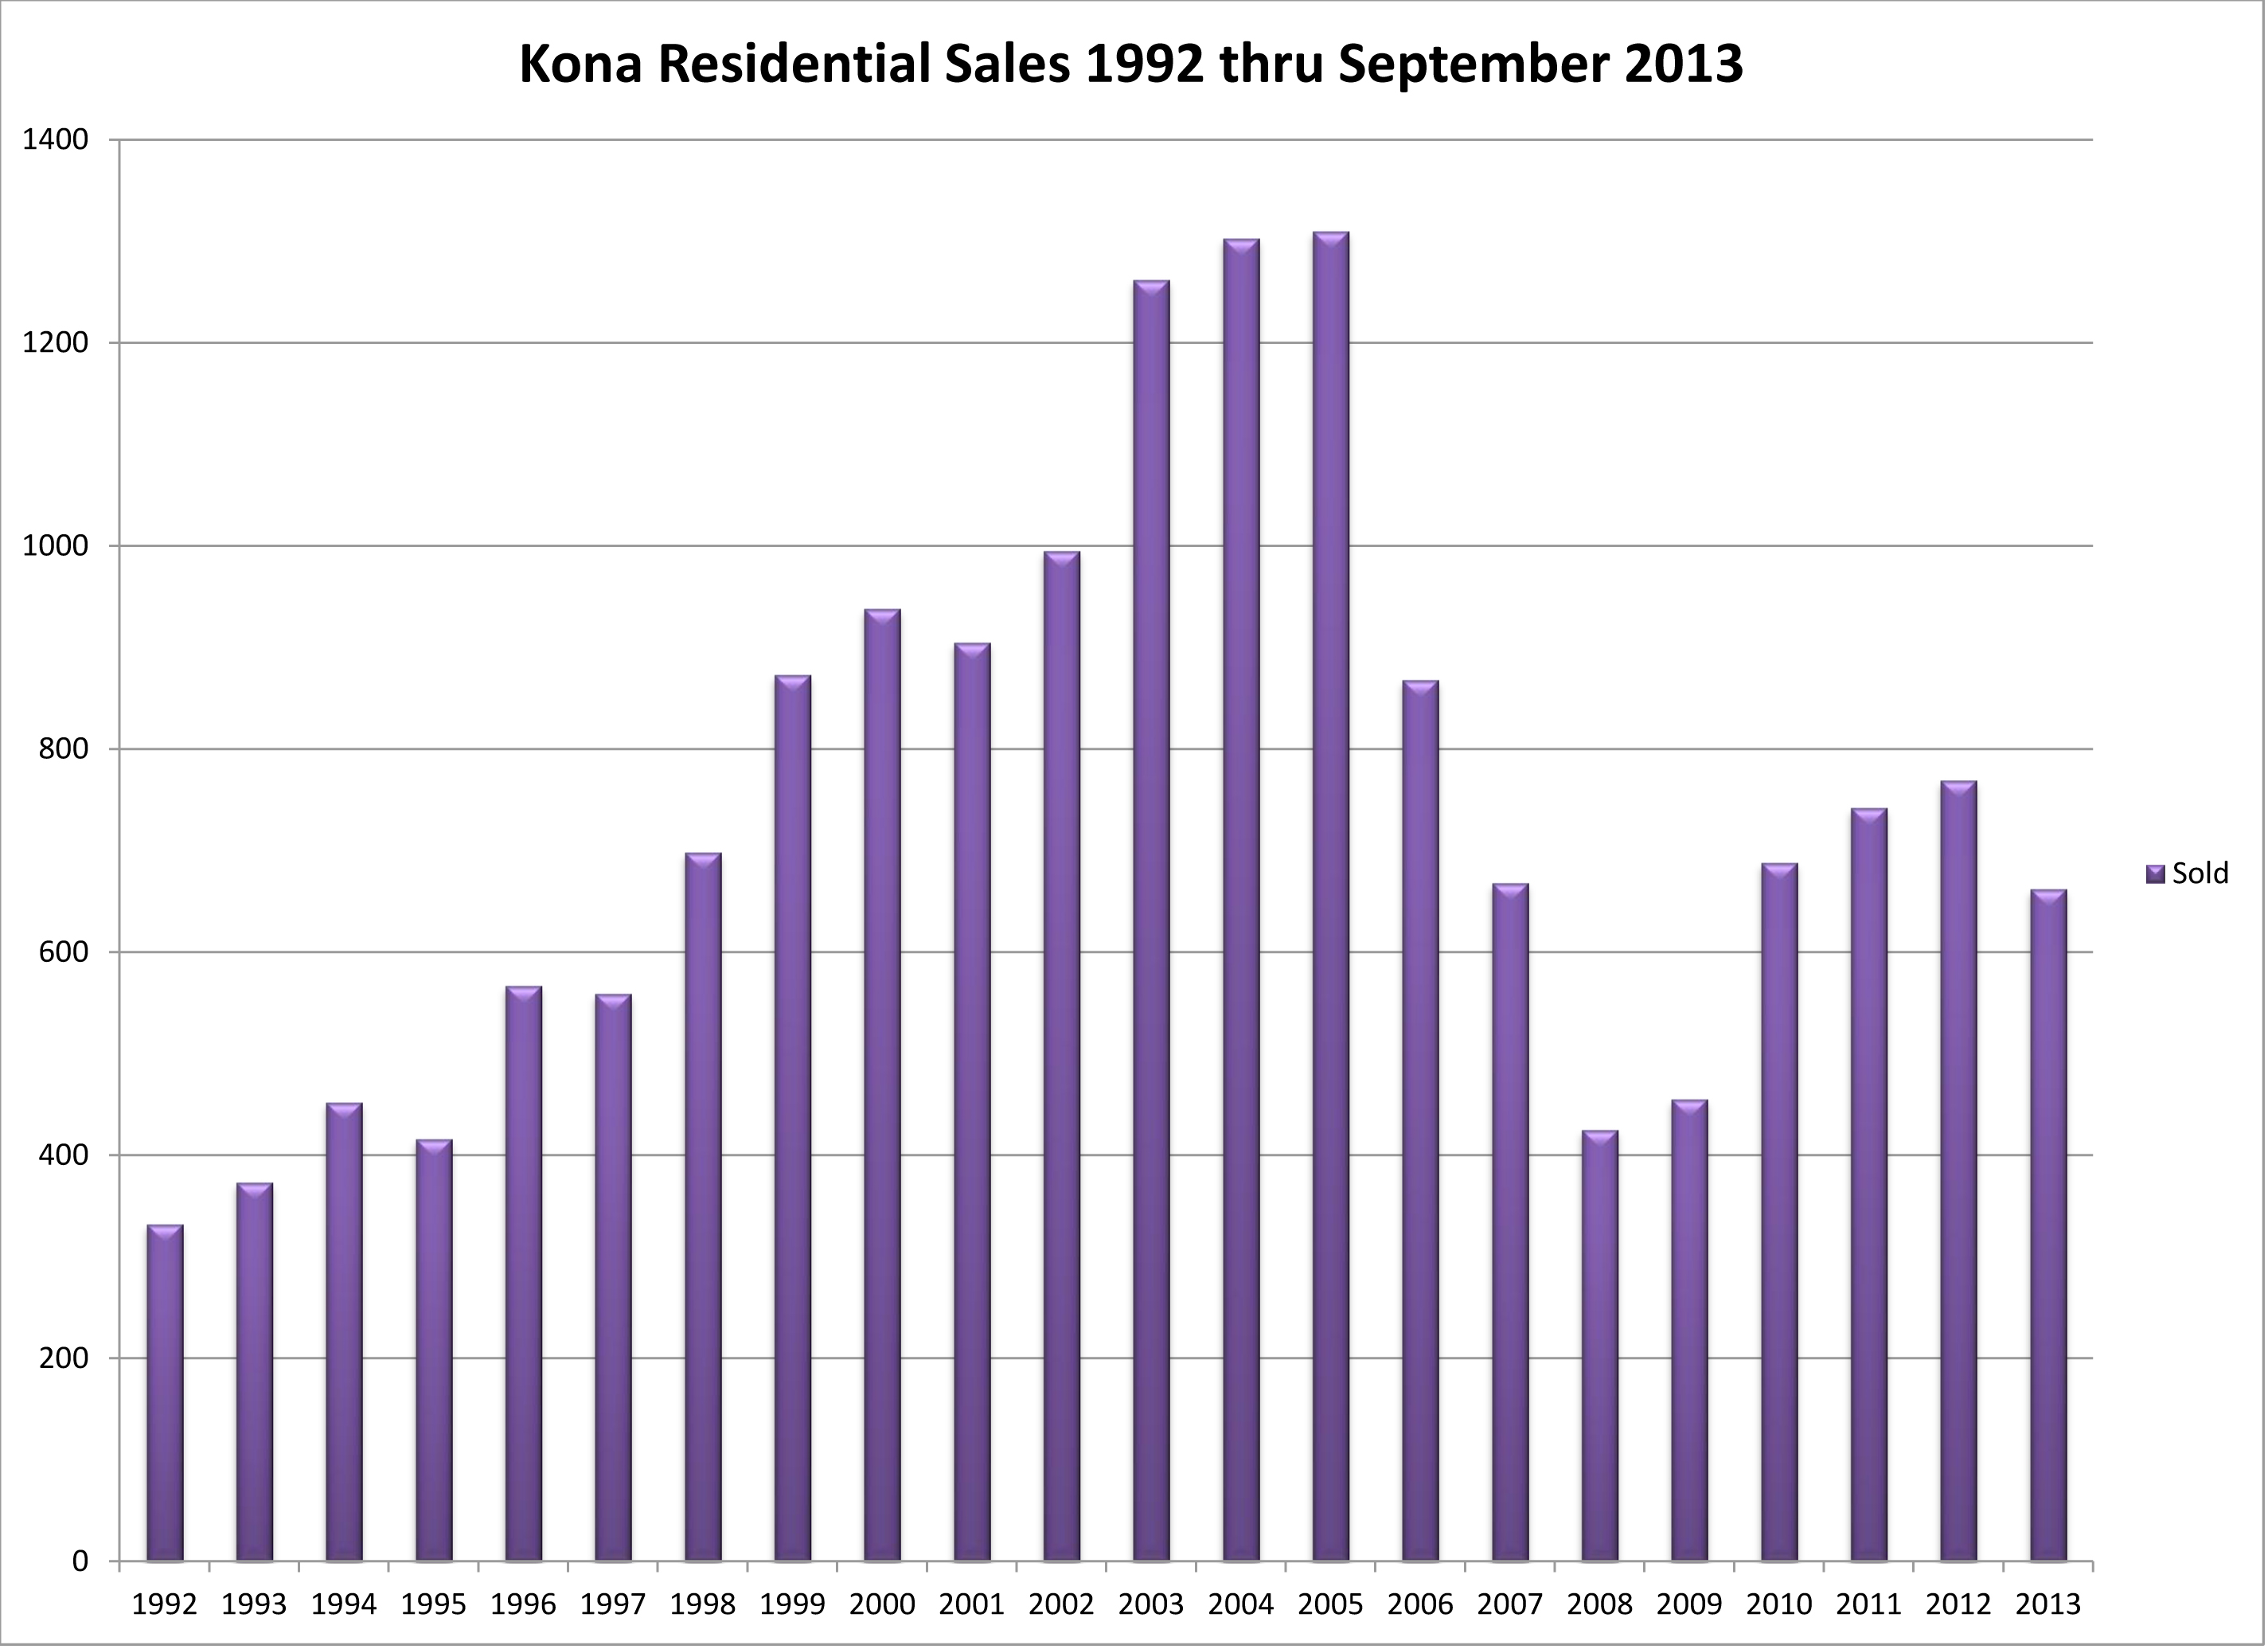 NK Res Sales houses and condos combined 92 thru 0913 by Y